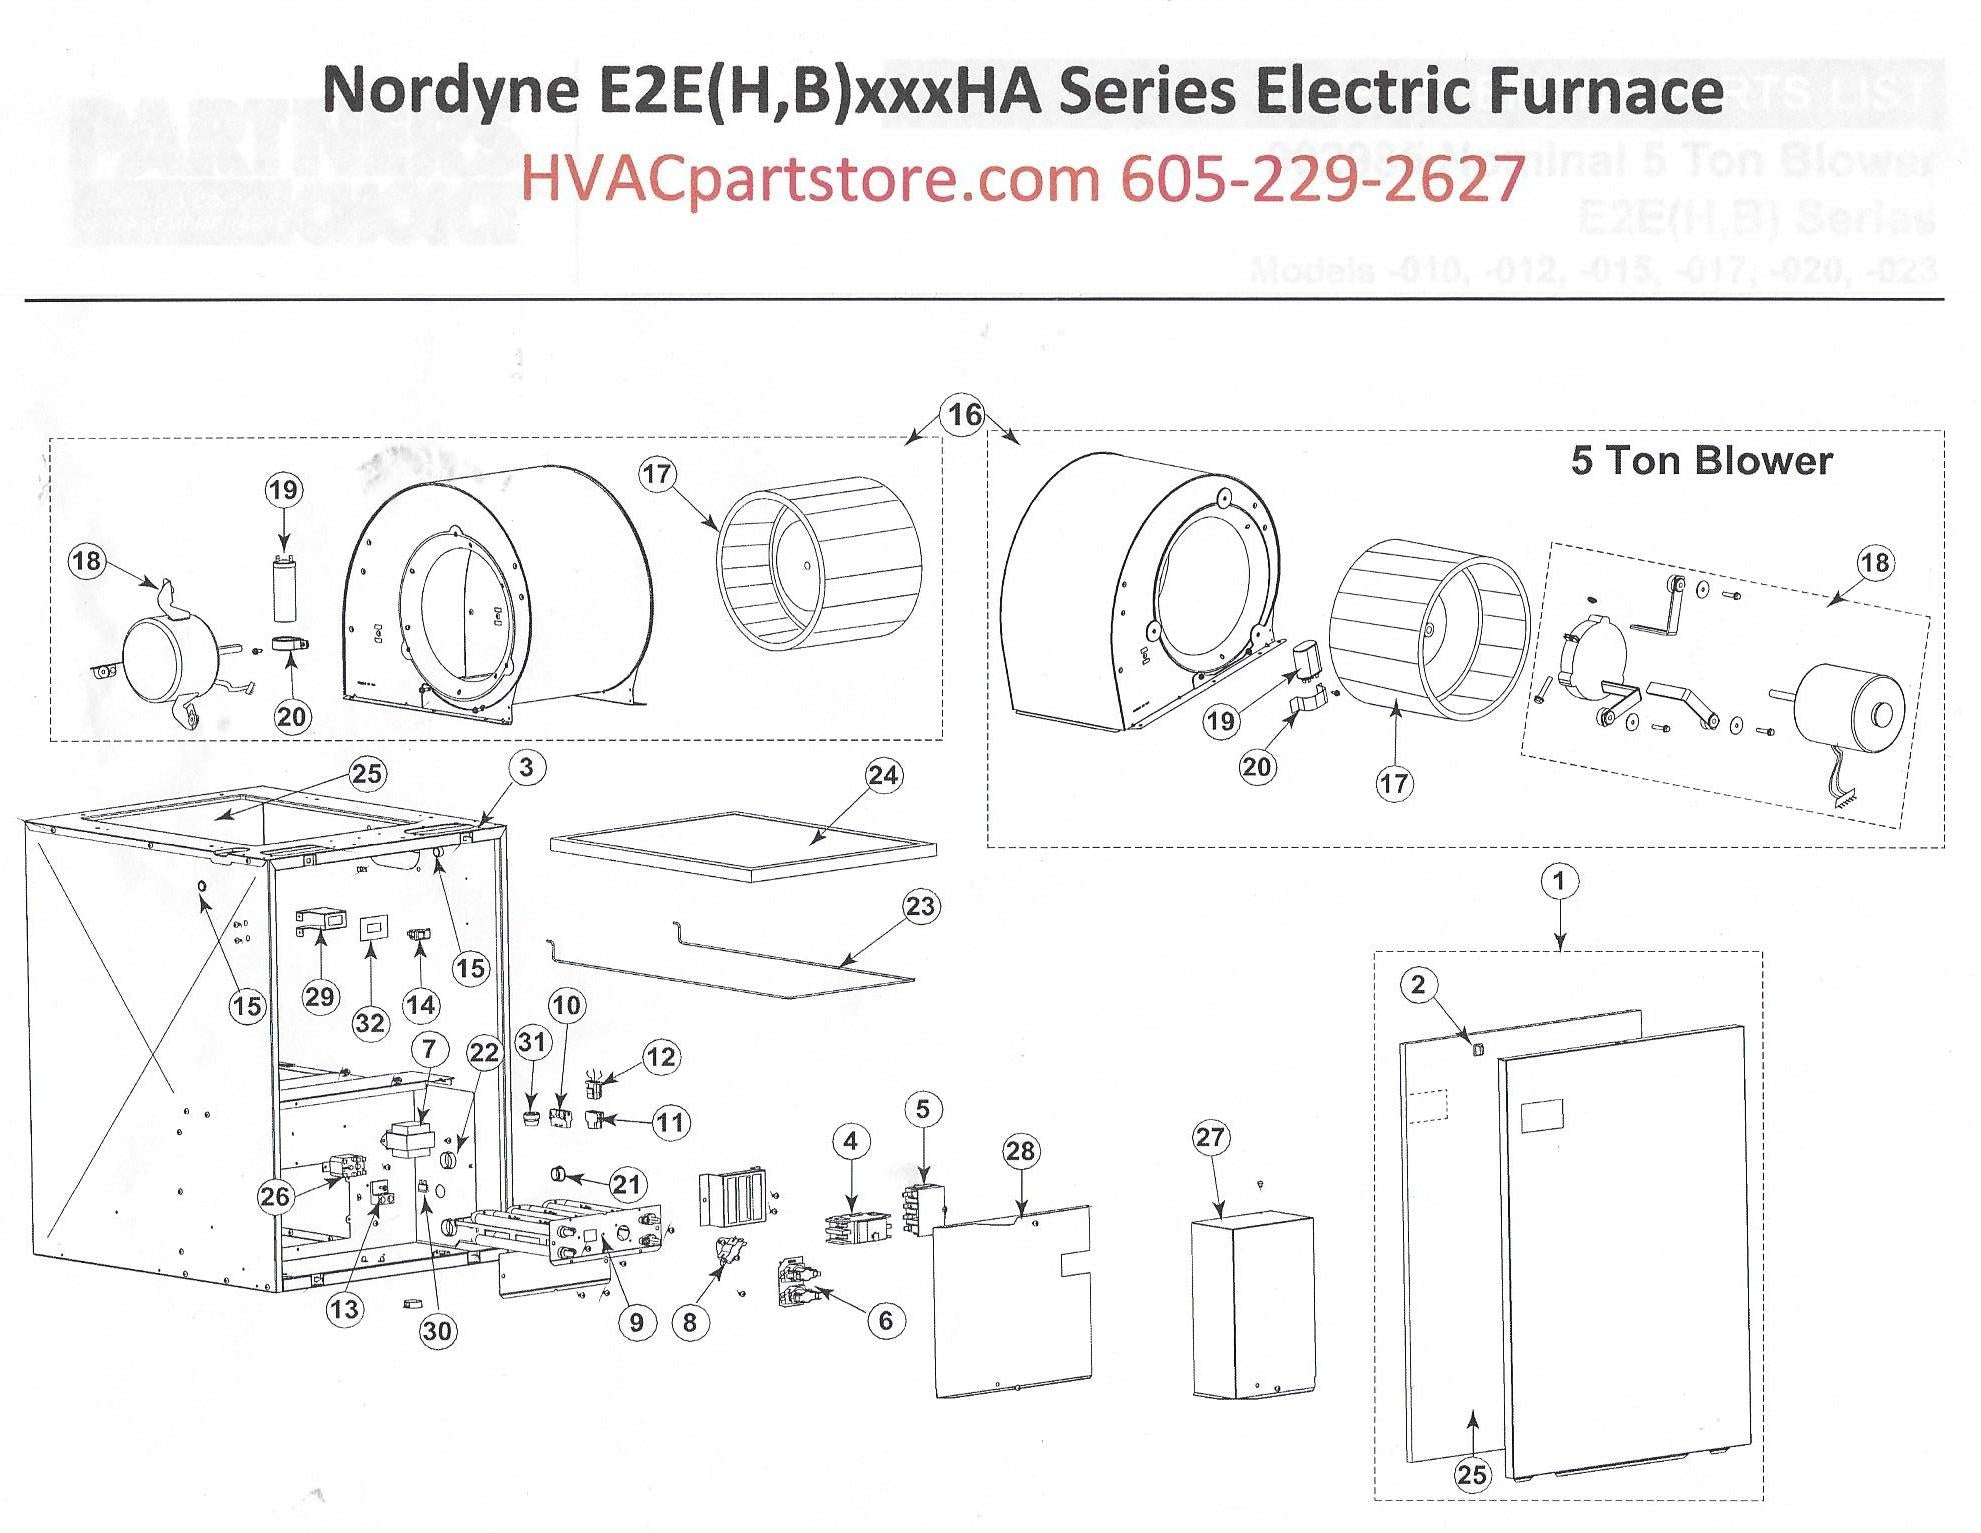 E2HADiagram_b4400f5e fcd1 43cd a422 4ef2ce8cde99?6326583503626438513 e2eb017ha nordyne electric furnace parts hvacpartstore electric furnace sequencer wiring diagram at soozxer.org